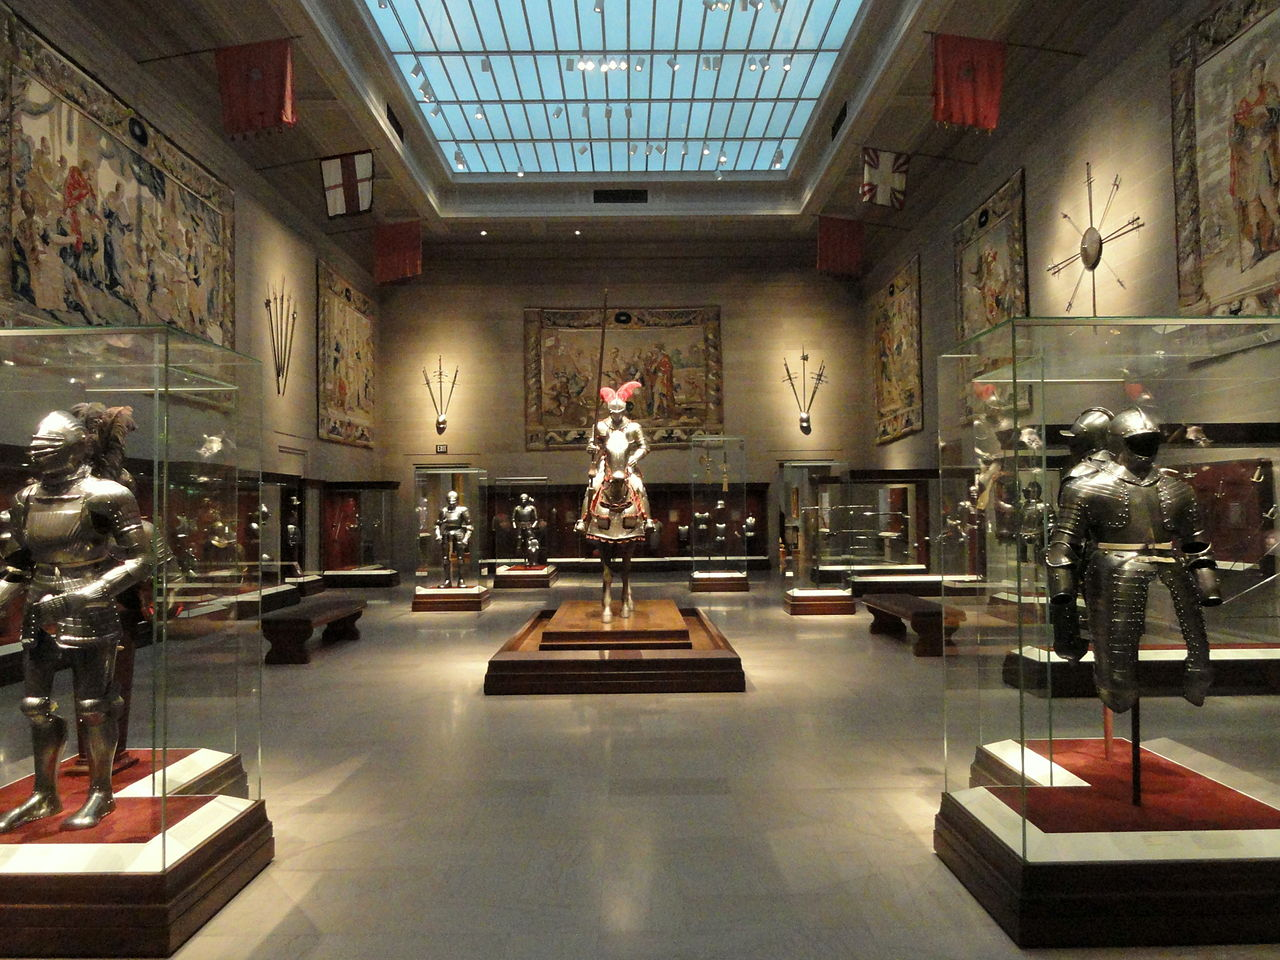 Beautiful Place to Visit In Ohio-Cleveland Museum of Art